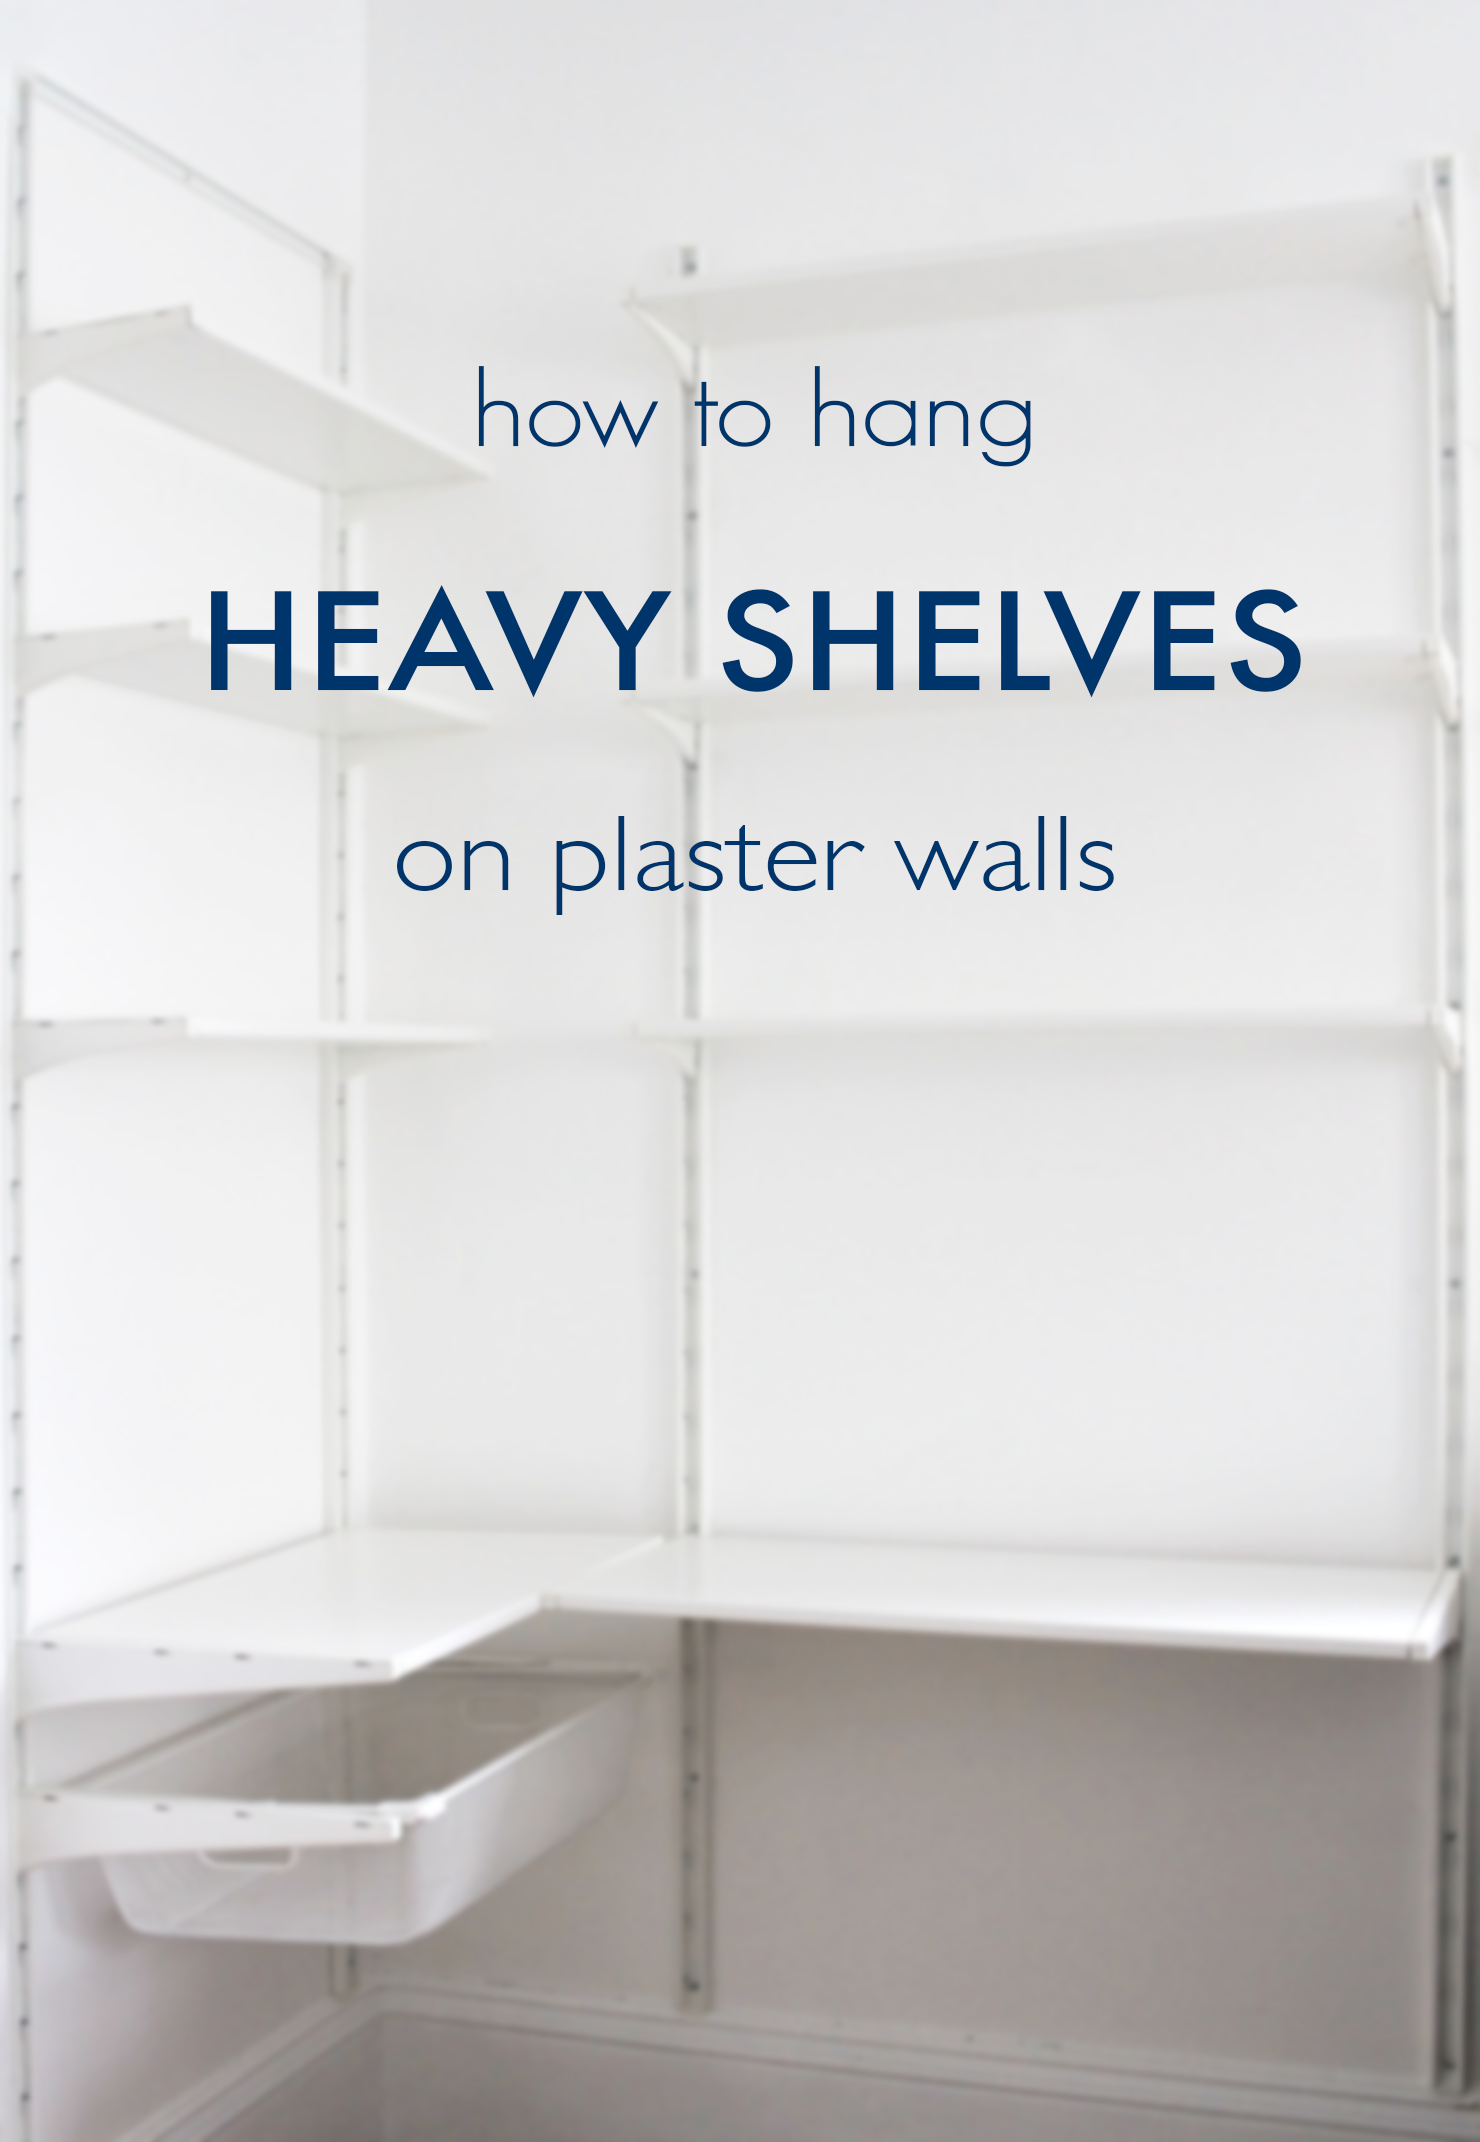 How To Hang Heavy Shelves On Horsehair Plaster Walls Idlehandsawake